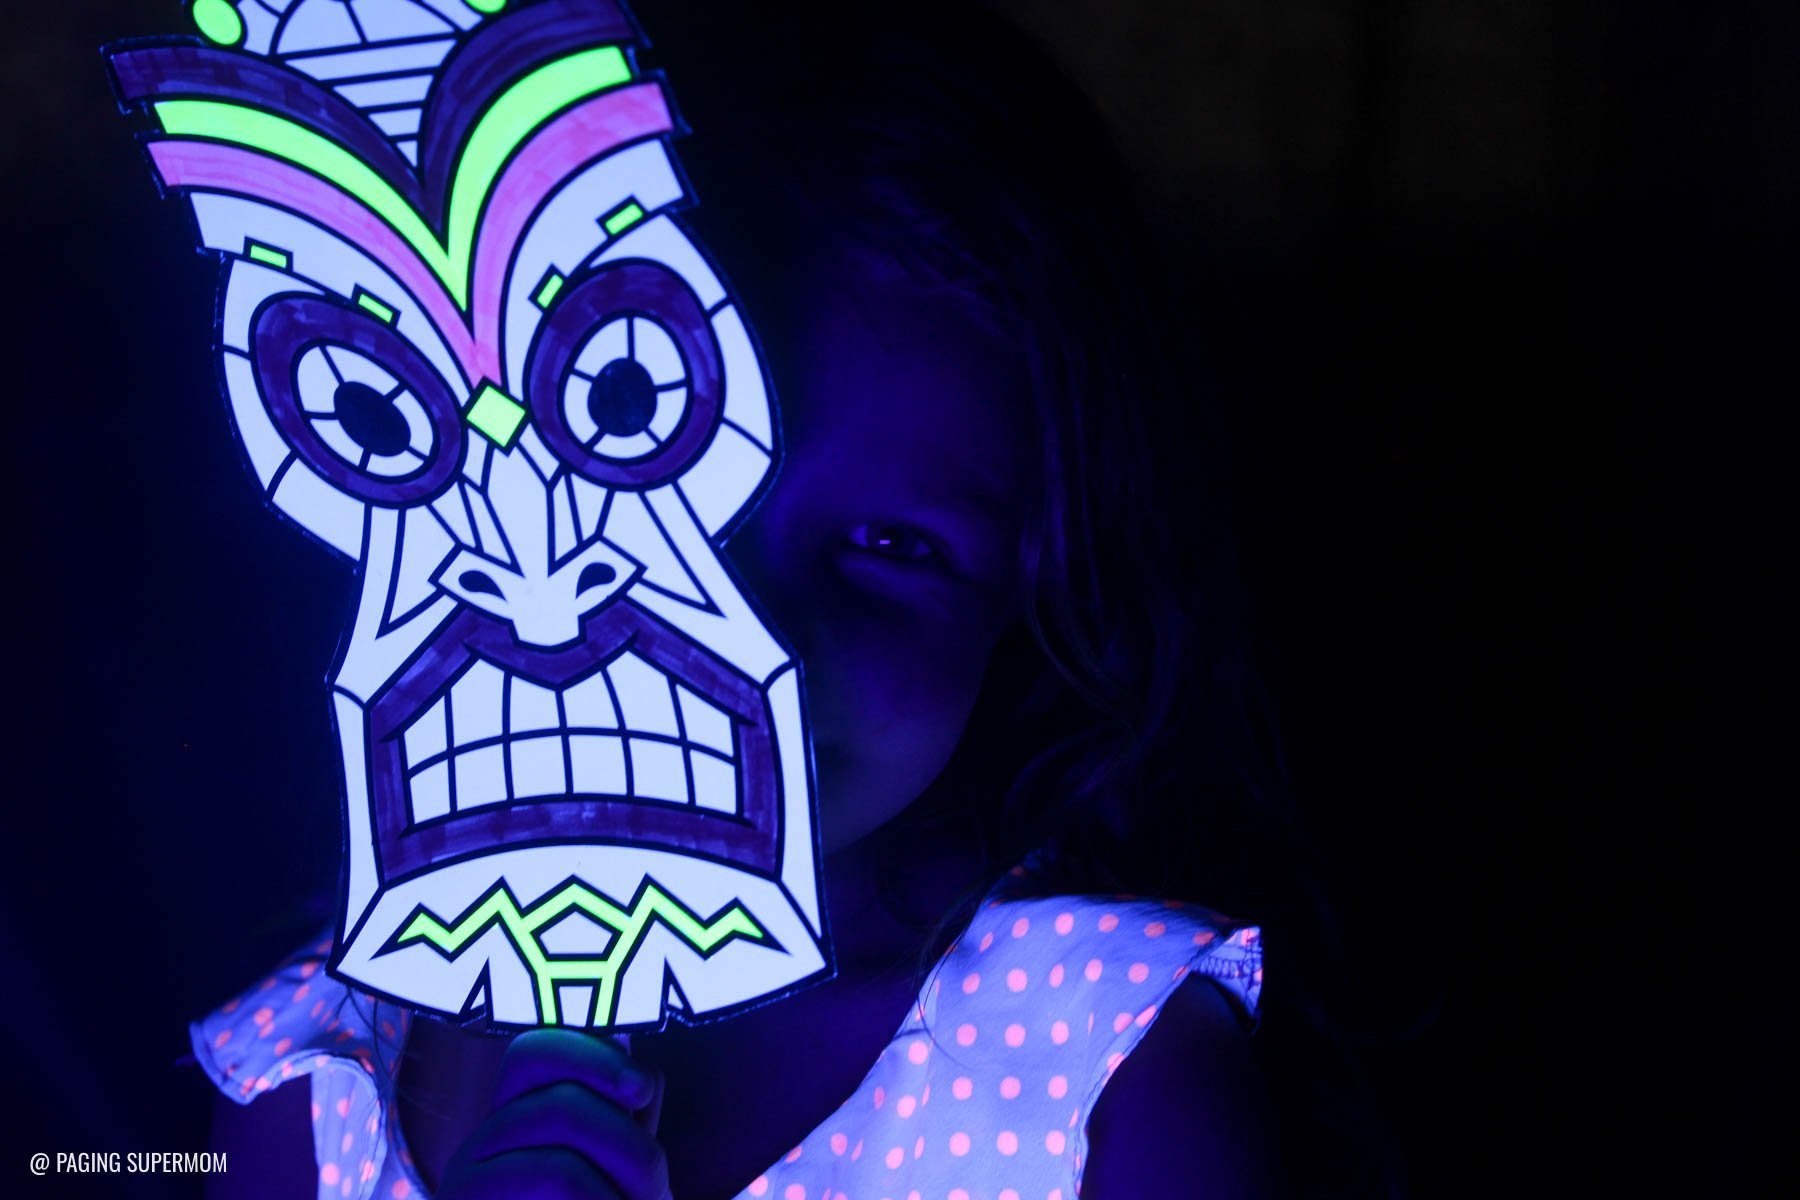 Fluorescent Te Ka Masks for a Moana Tomatoa Party - Blacklight Shiny Party based on the Realm of Monsters in Moana movie via @PagingSupermom